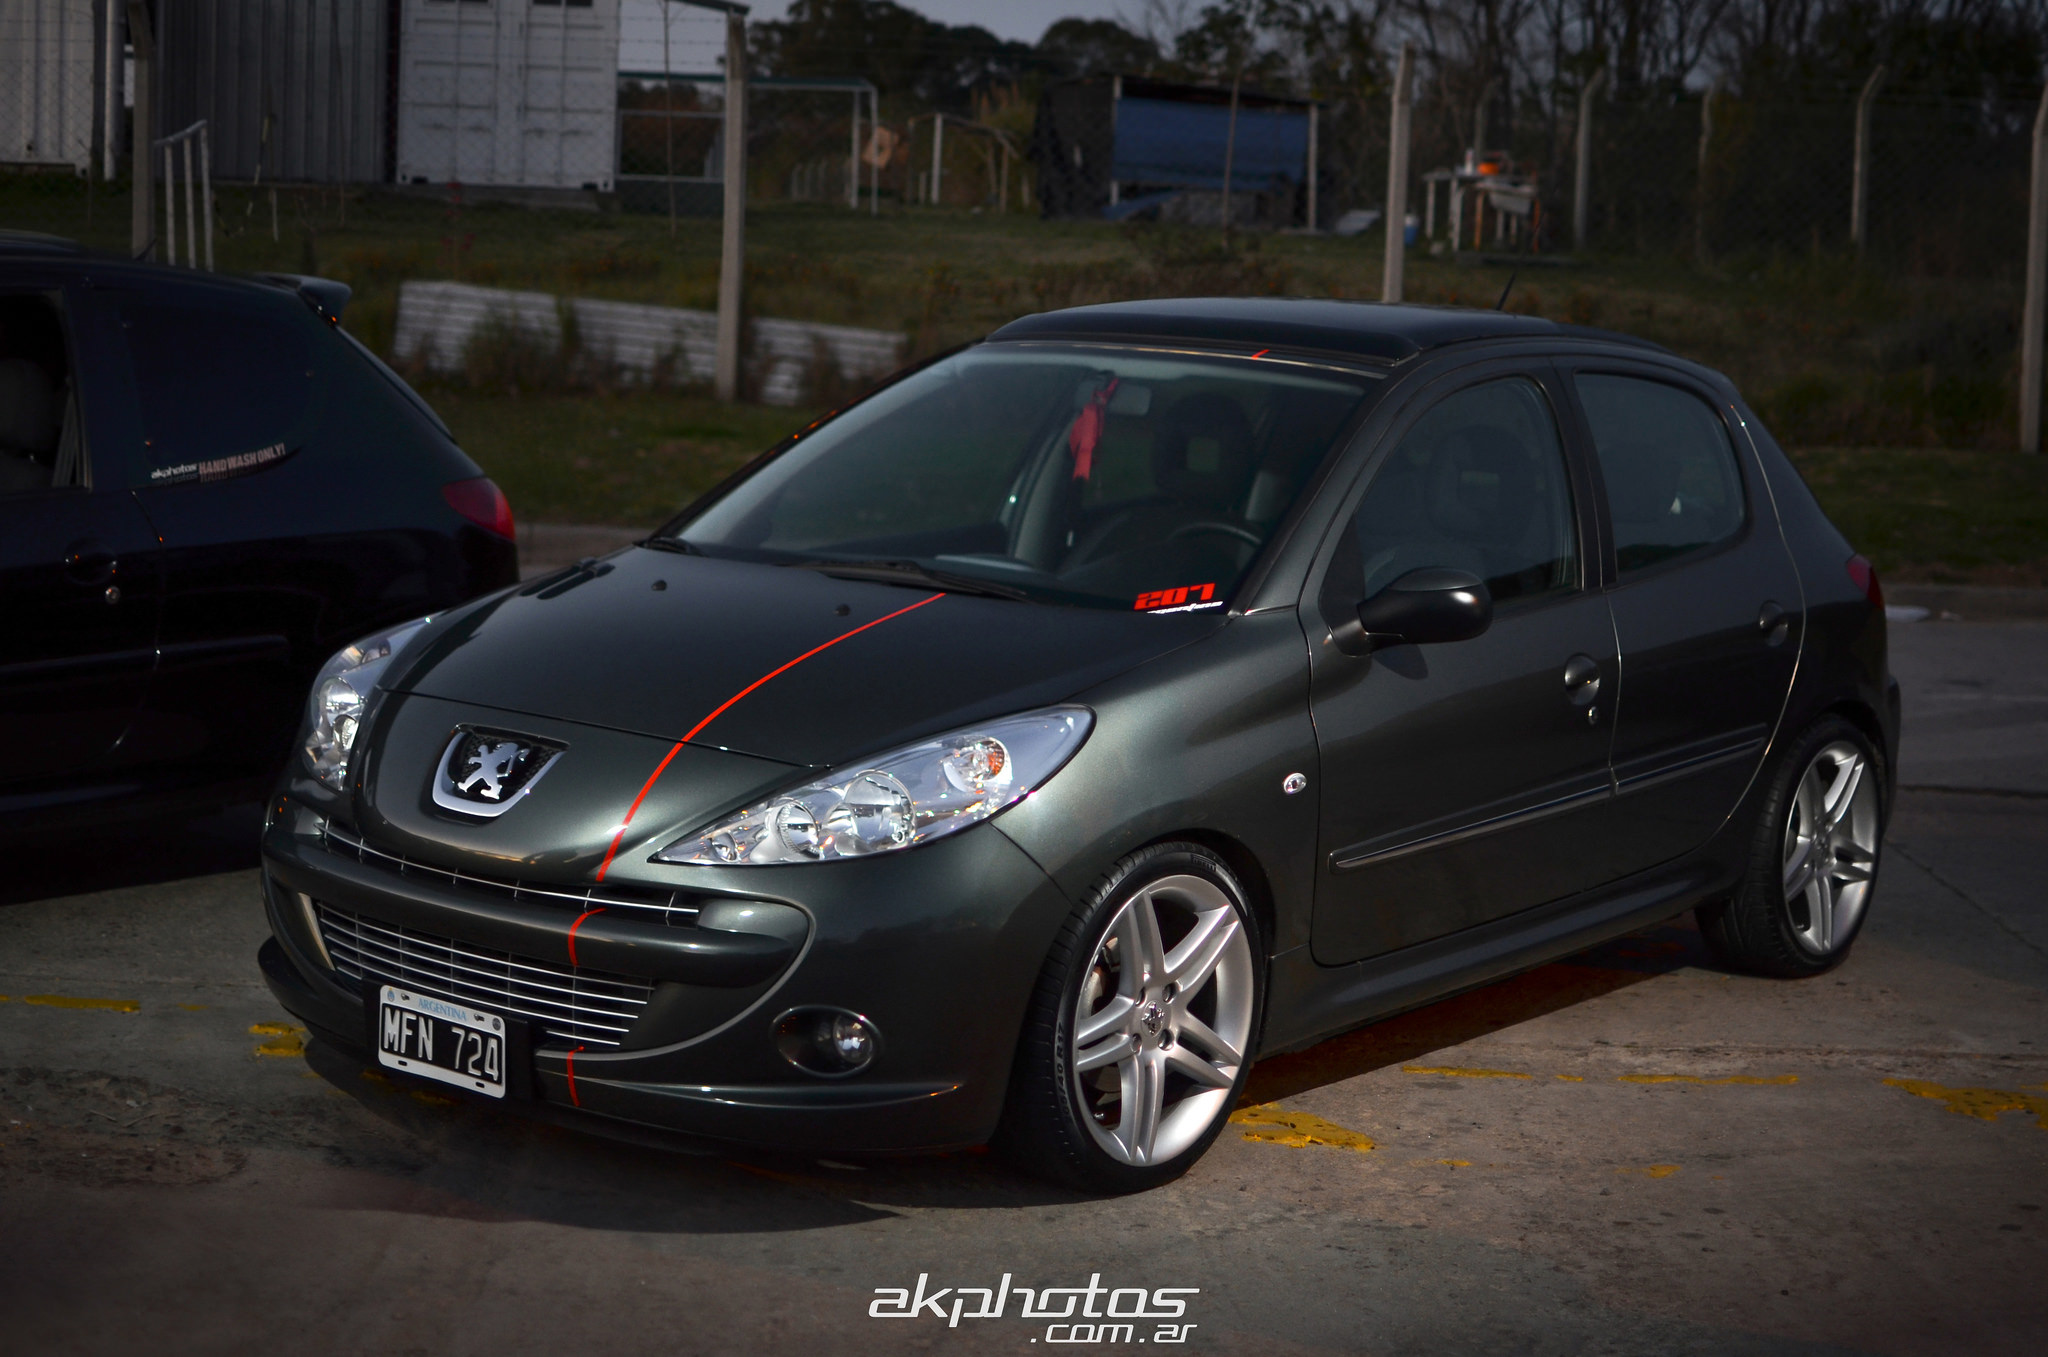 peugeot 207 tuning peugeot images peugeot 207 tuning hd. Black Bedroom Furniture Sets. Home Design Ideas